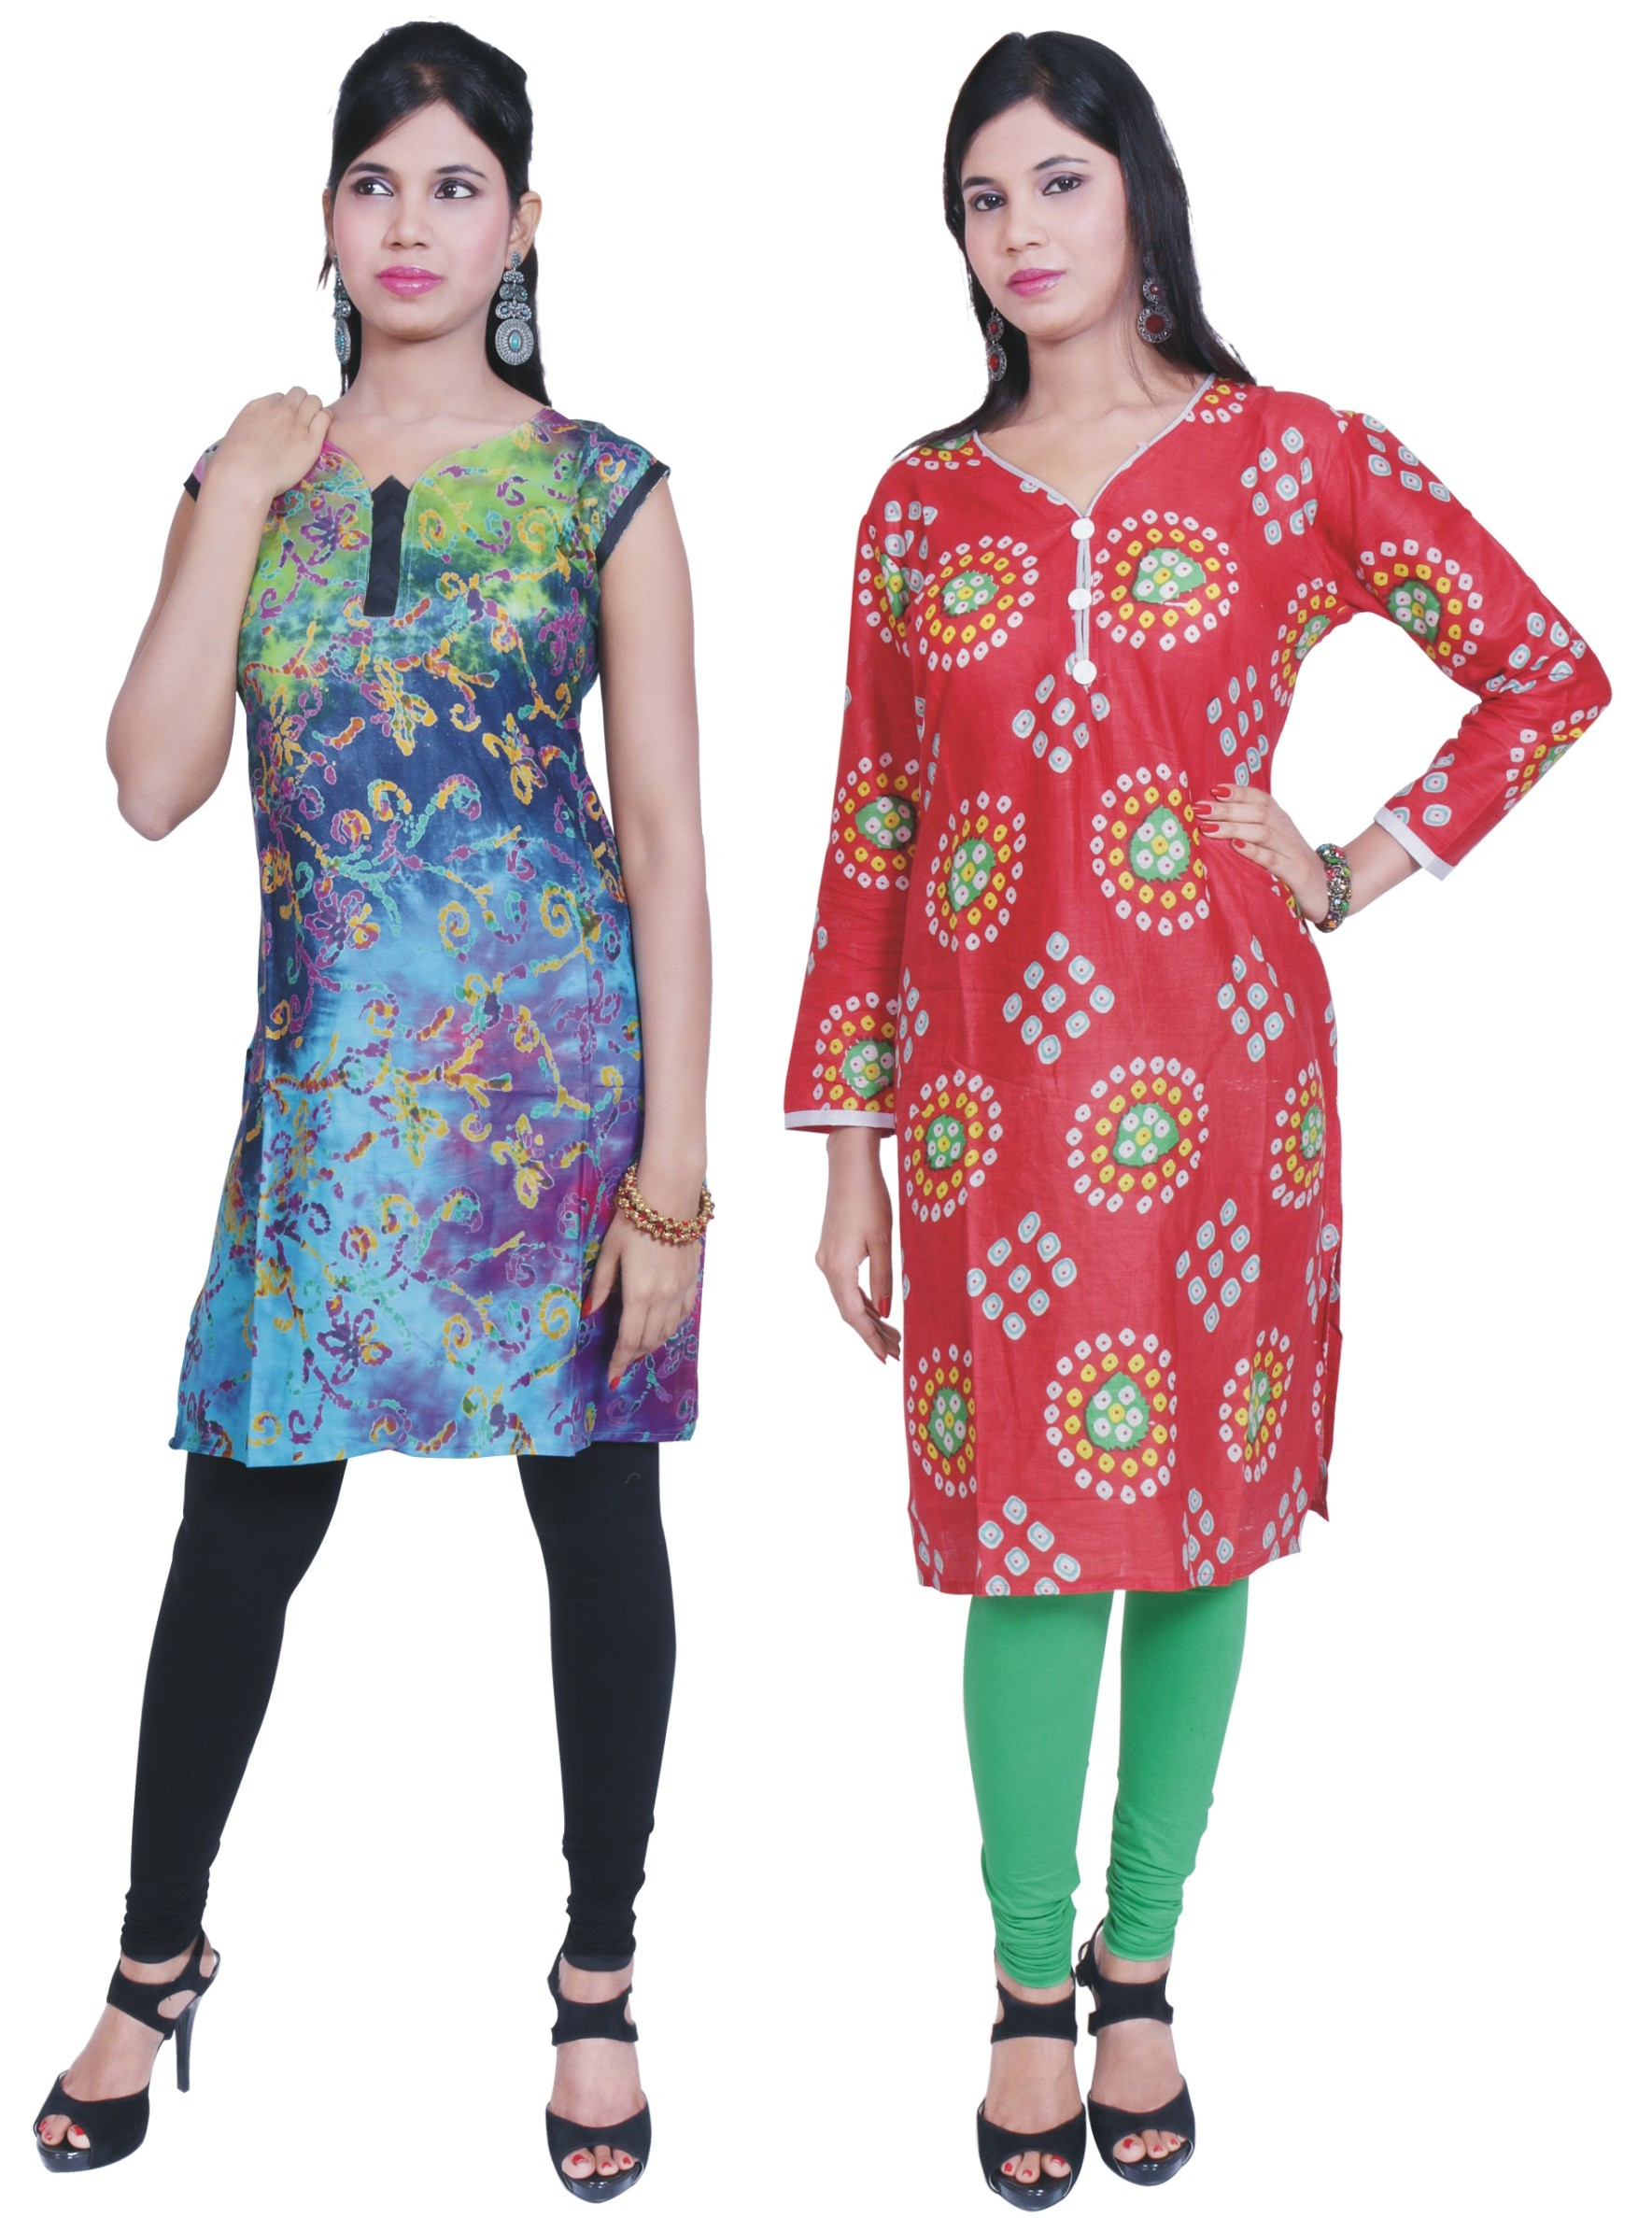 Combo Offer - 2 Girls Kurti + 2 legging Free